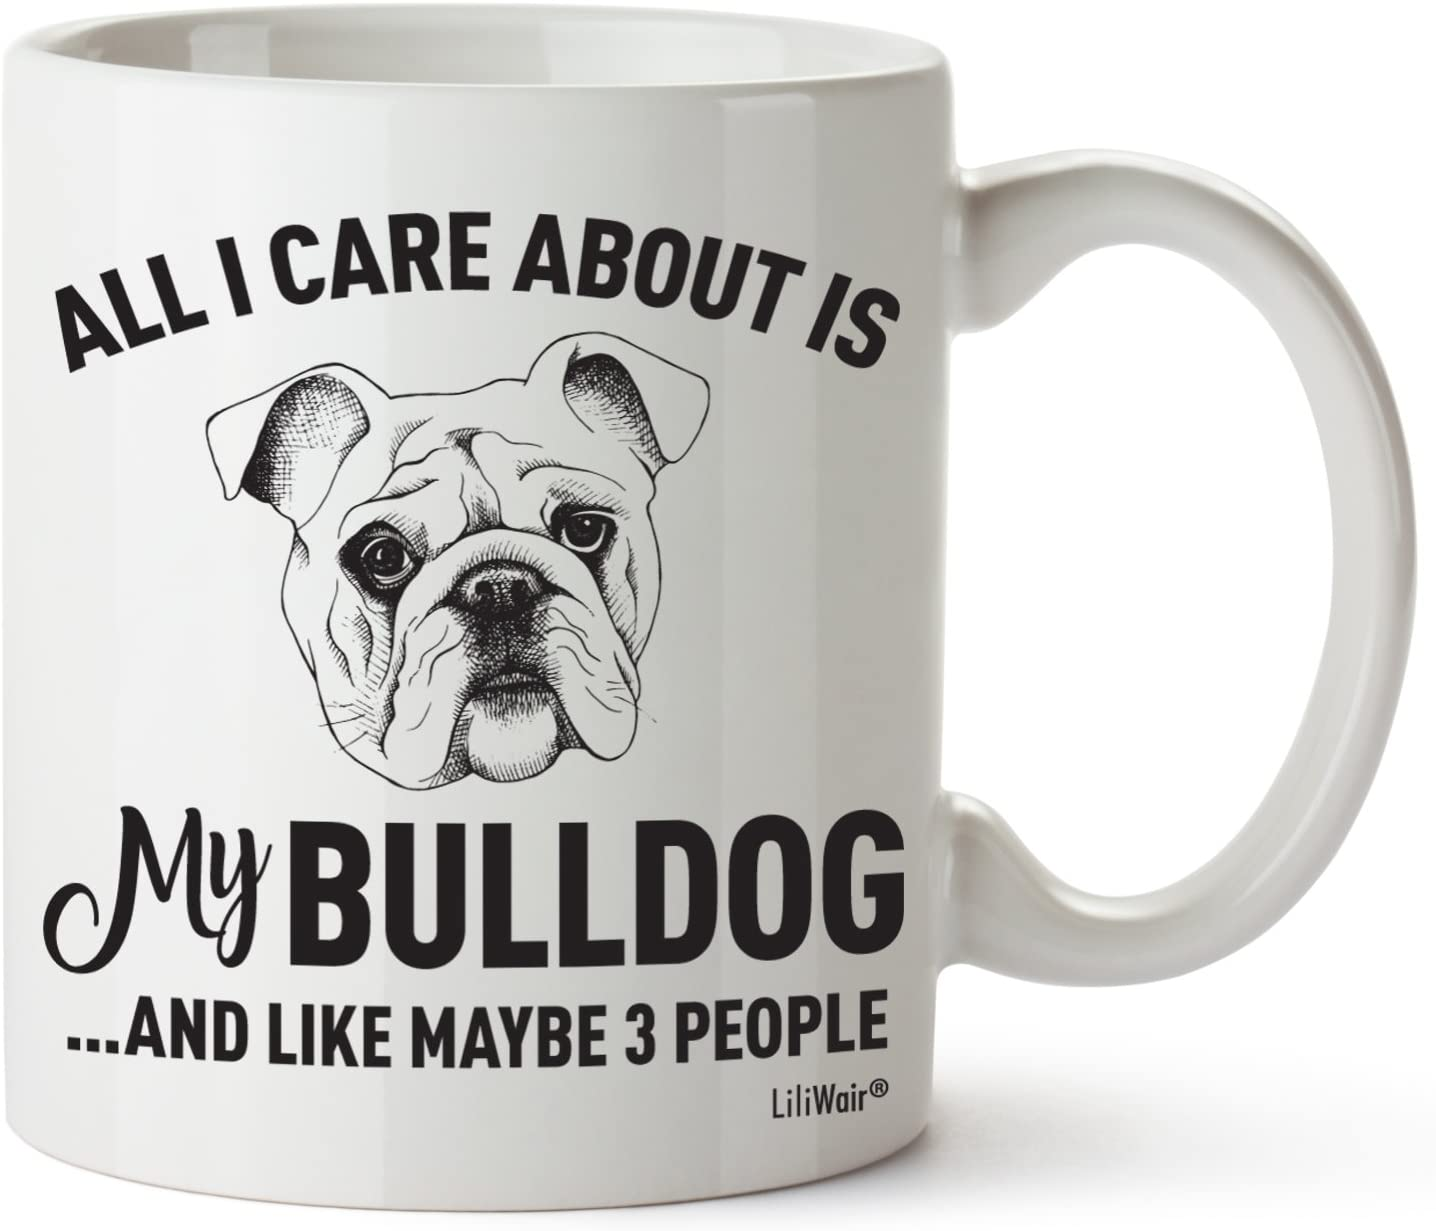 Bulldog Mom Gifts Mug For Christmas Women Men Dad Decor Lover Decorations Stuff I Love Bulldogs Coffee Accessories Talking Art Apparel Funny Birthday Gift Home Supplies Products Dog Coffee Cup Mugs